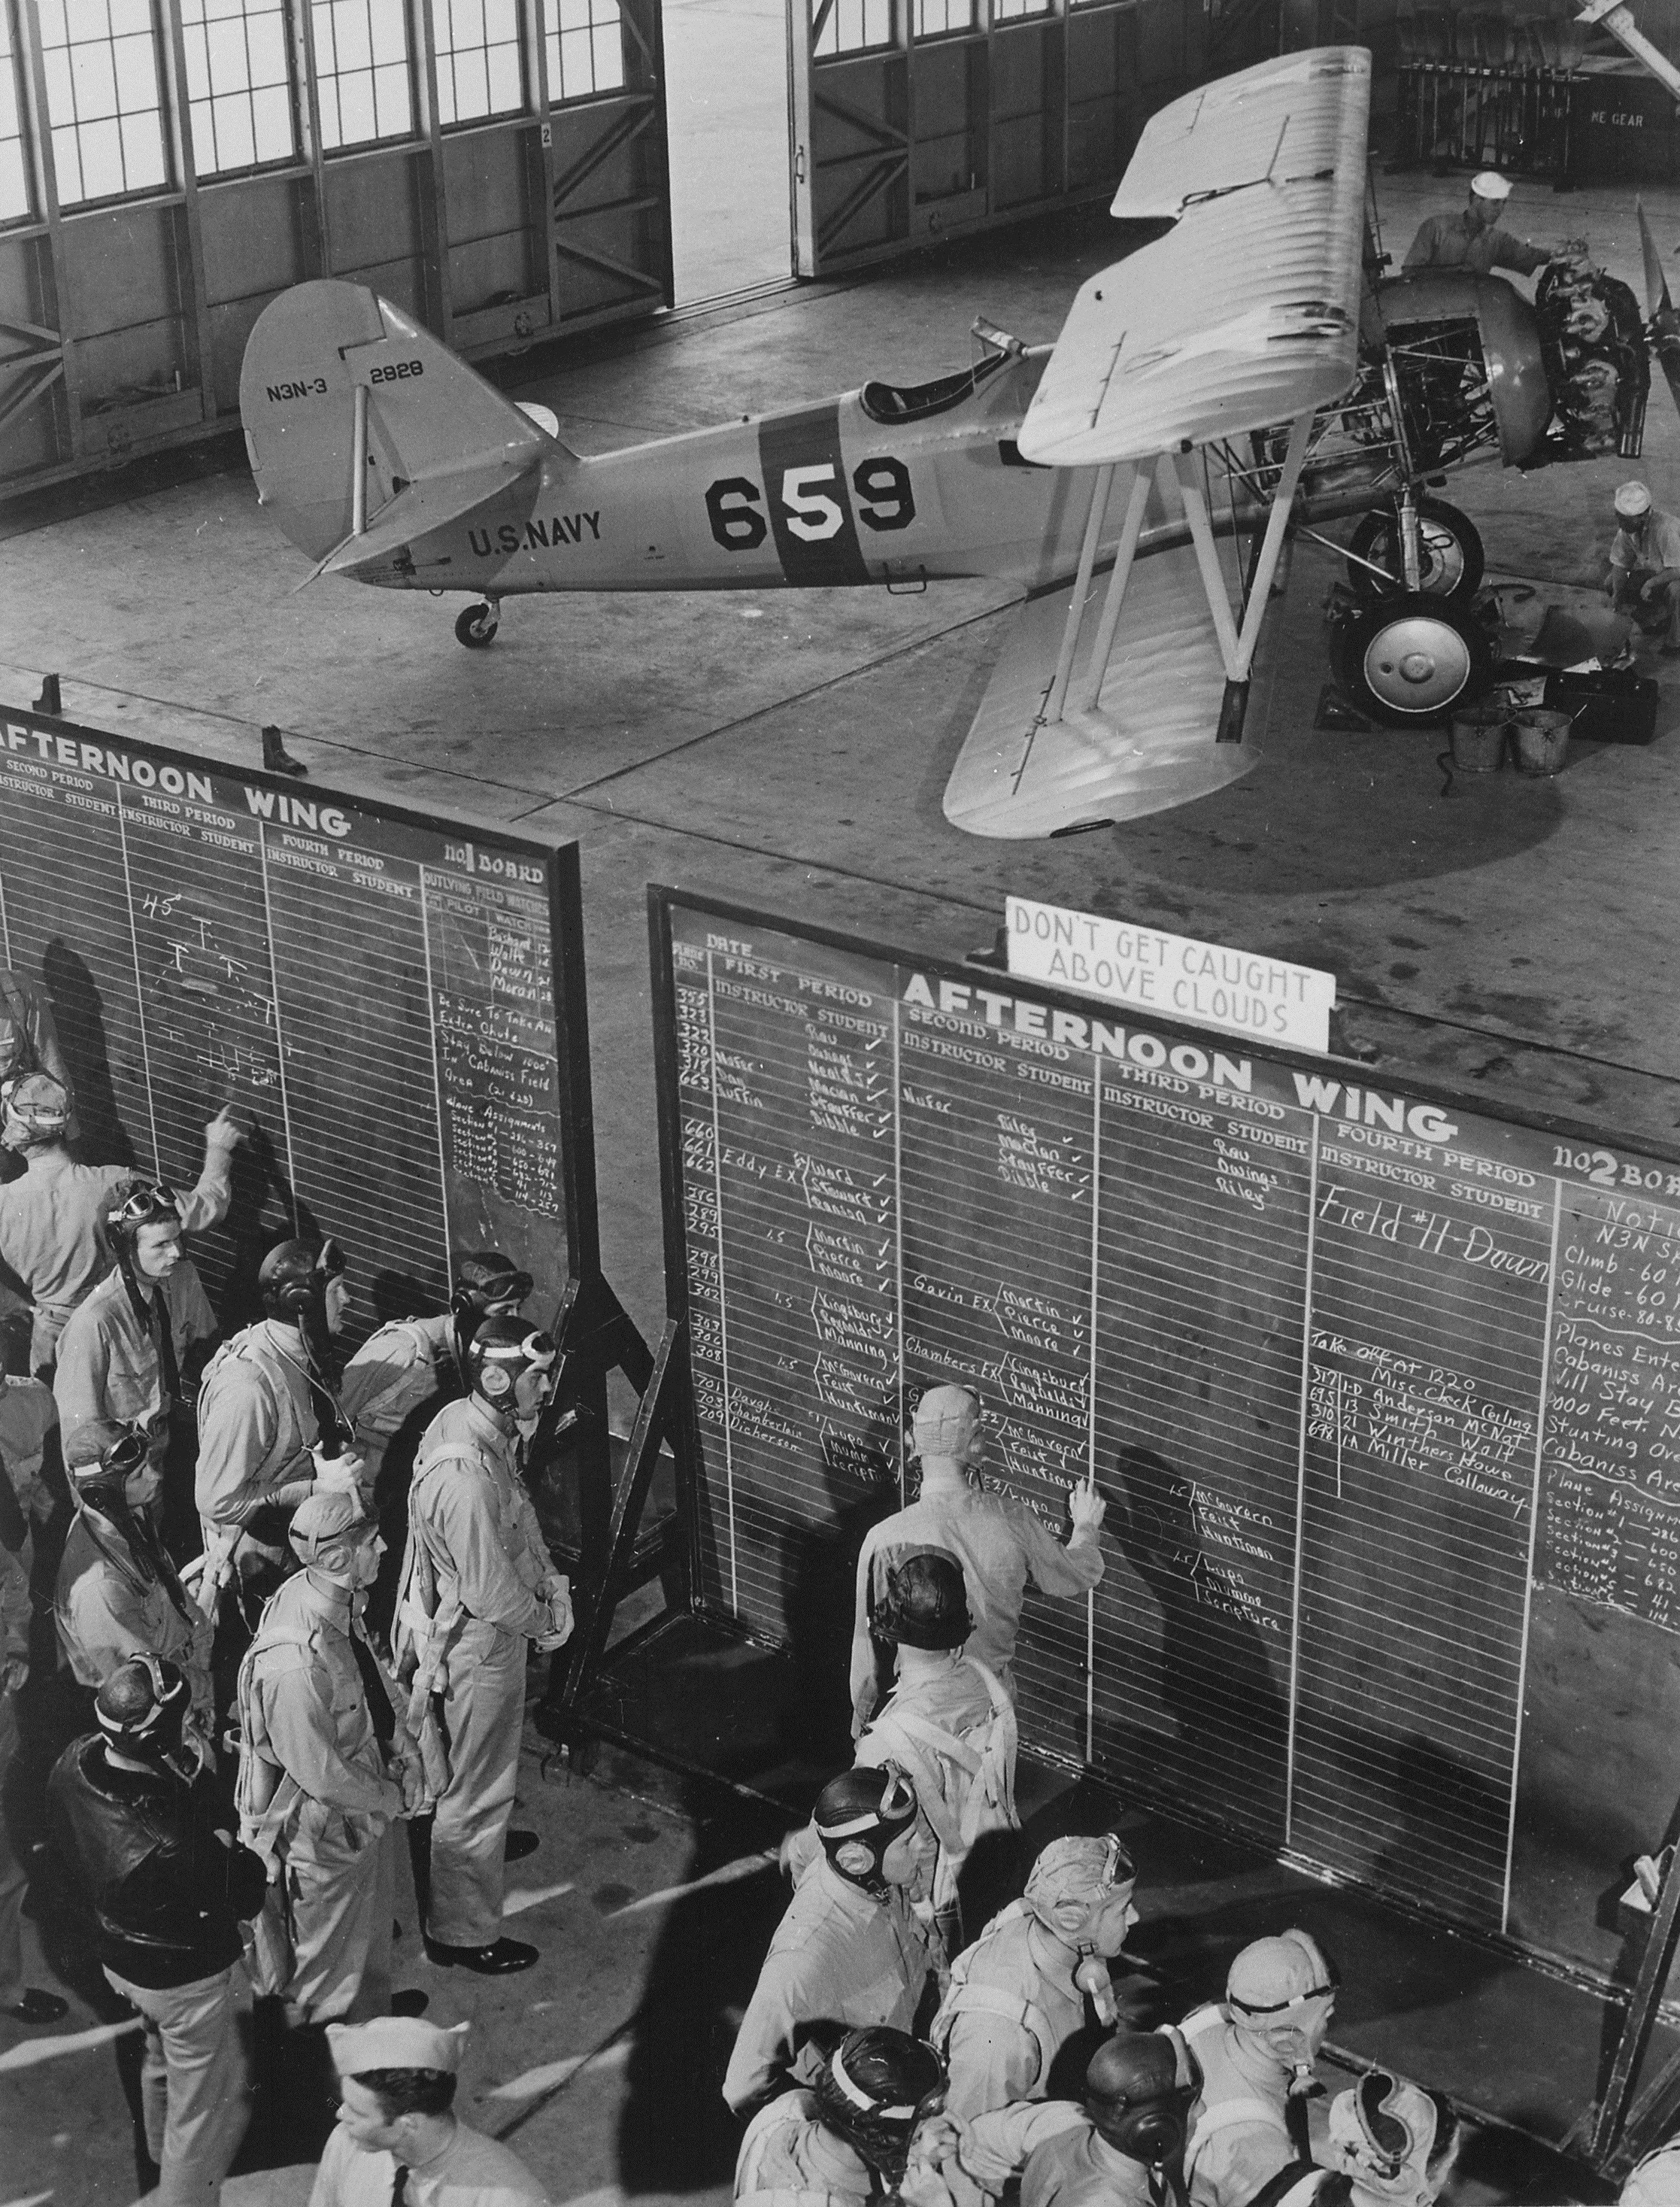 Aviation_cadets_check_flight_boards_for_last_minute_instructions_at_Naval_Air_Training_Center_Corpus_Christi_Texas...._-_NARA_-_520975